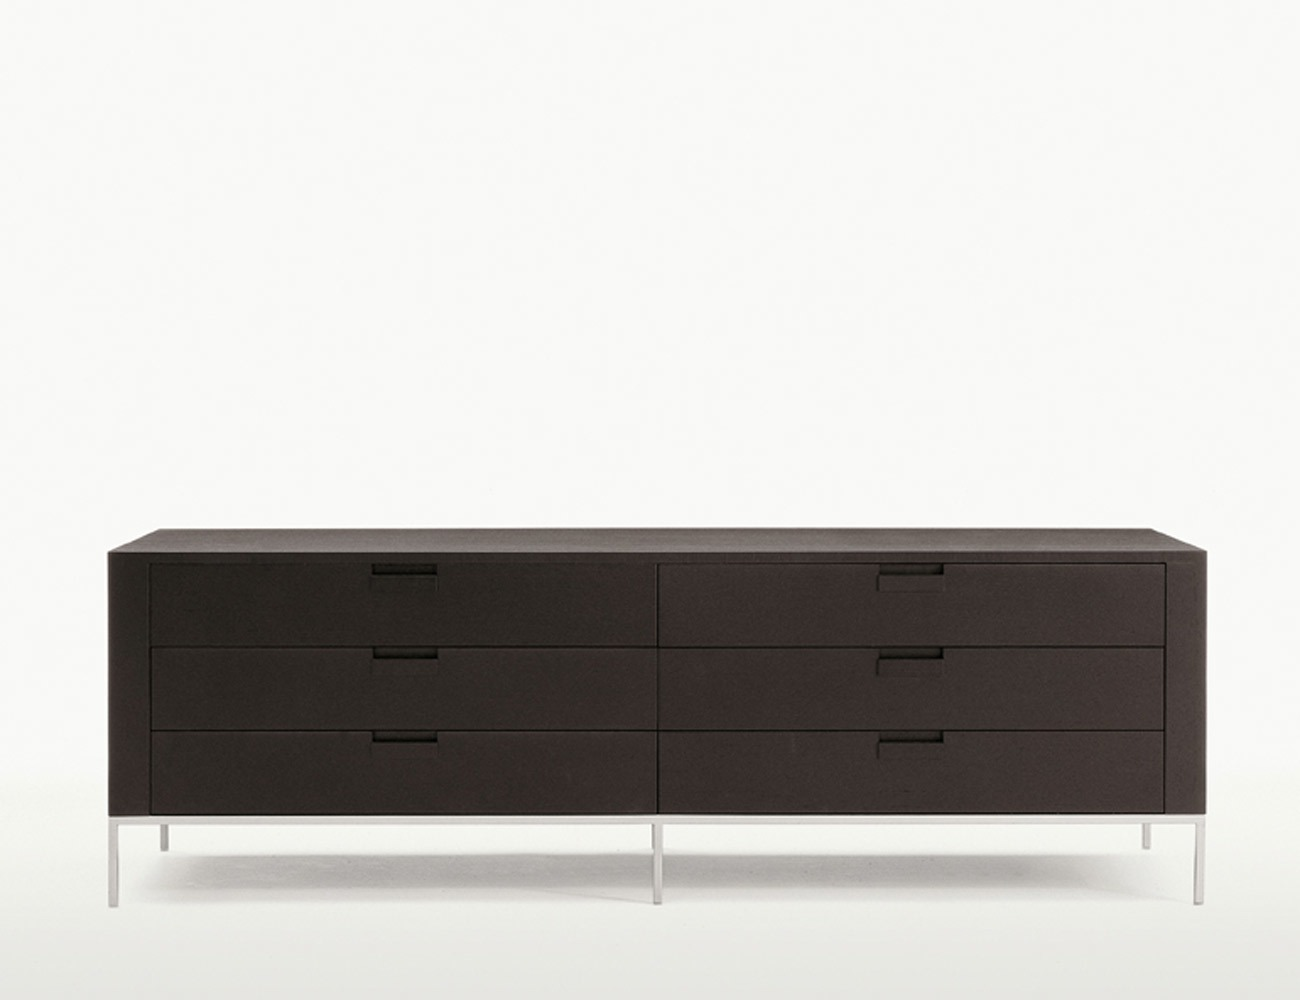 maxalto b b italia titanes storage unit buy from campbell watson uk. Black Bedroom Furniture Sets. Home Design Ideas